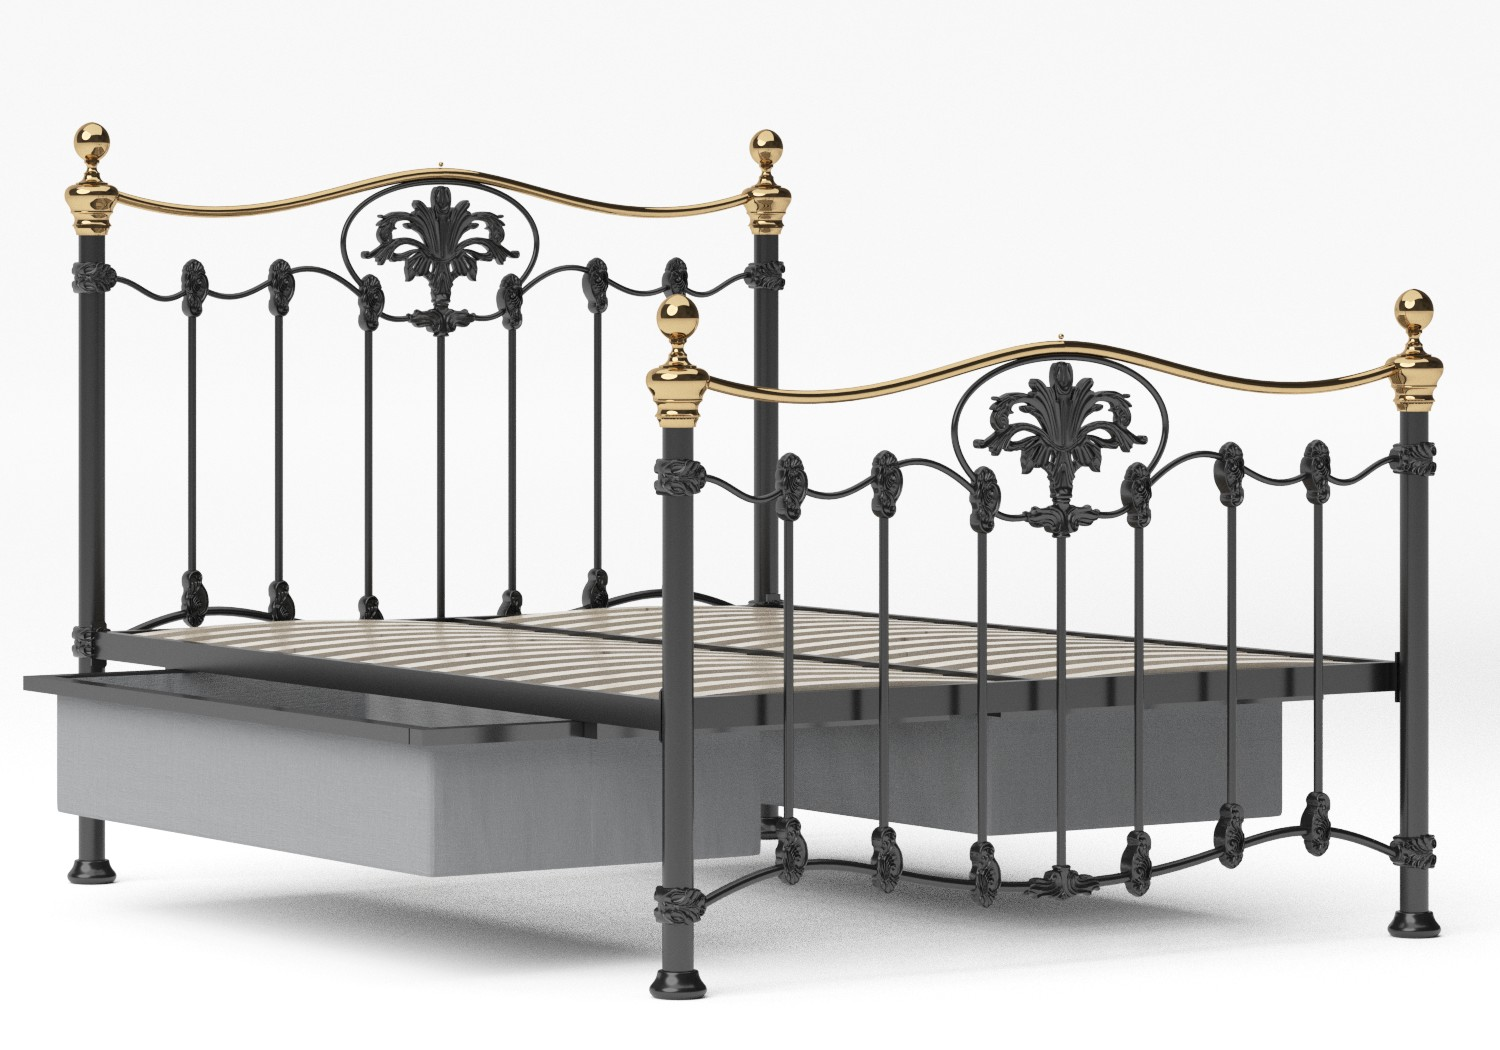 Camolin Iron/Metal Bed in Satin Black with Brass details shown with underbed storage